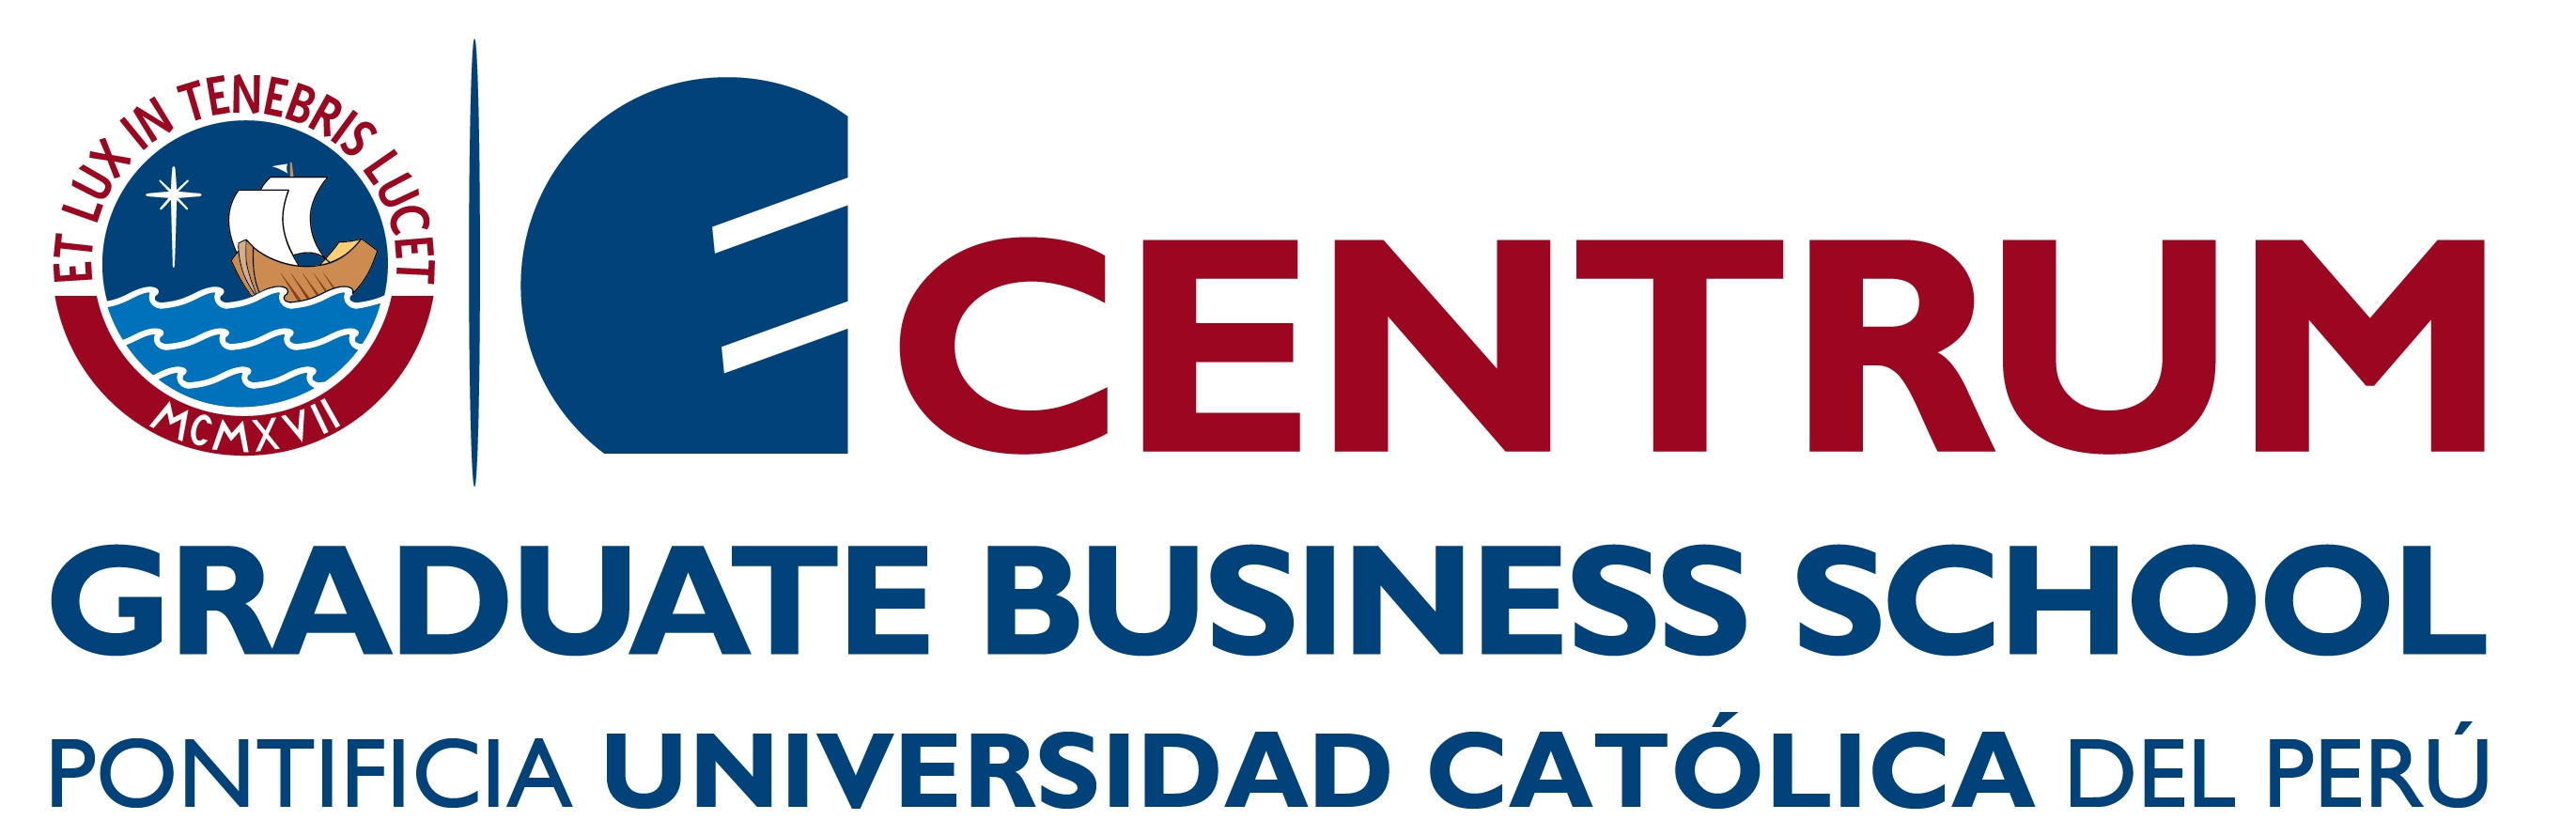 Logo CENTRUM PUCP Business School – Pontificia Universidad Católica del Perú